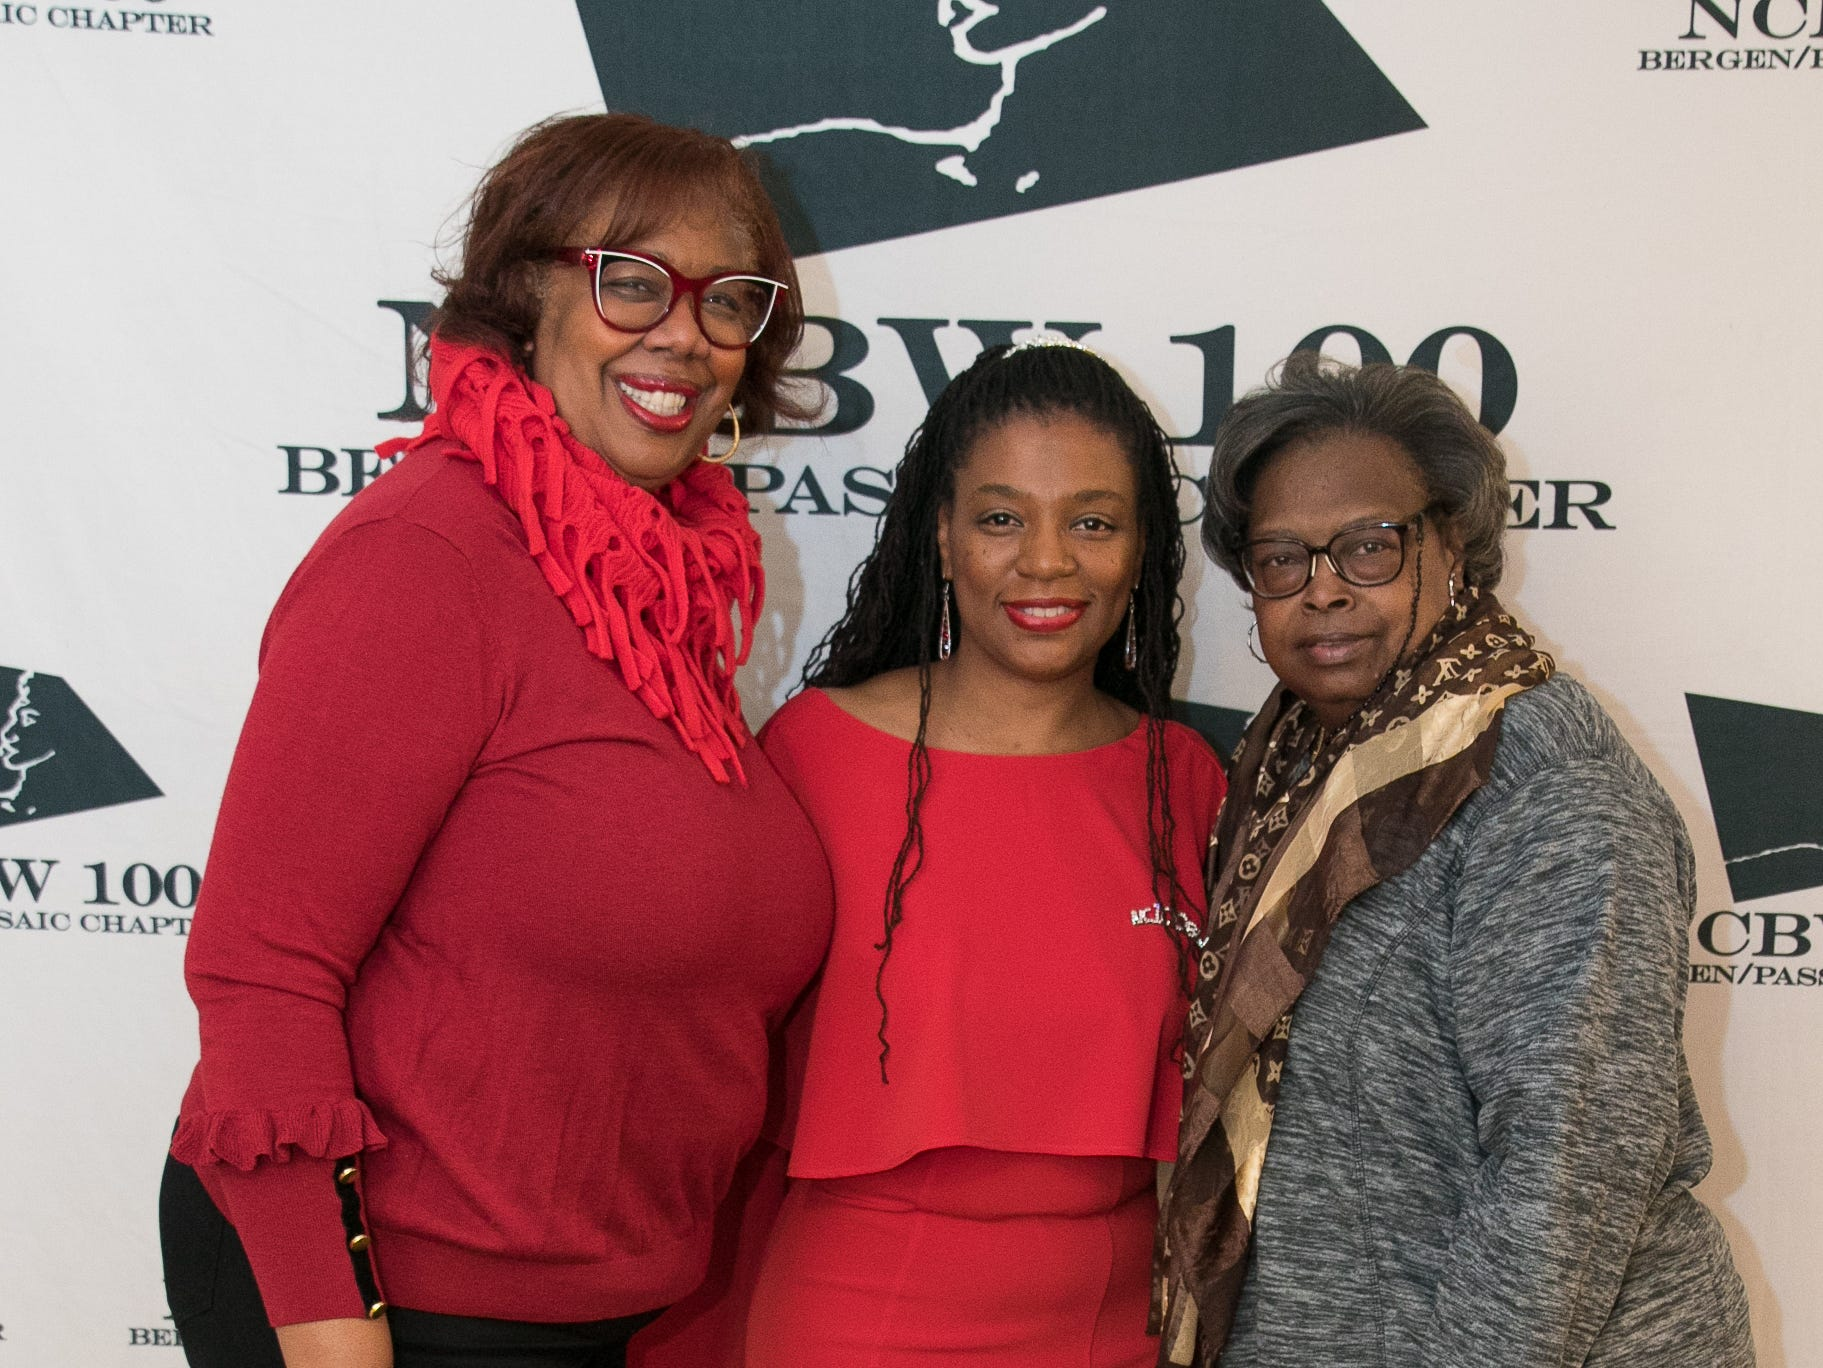 Debra Hall, Dr. Ketsia Alerte-Sadler, Wanda Cleaves. The National Coalition of Black Women of Bergen and Passaic Counties held its annual Heart Healthy Go Red Event at The Hackensack Performing Arts Theater. 02/01/2019